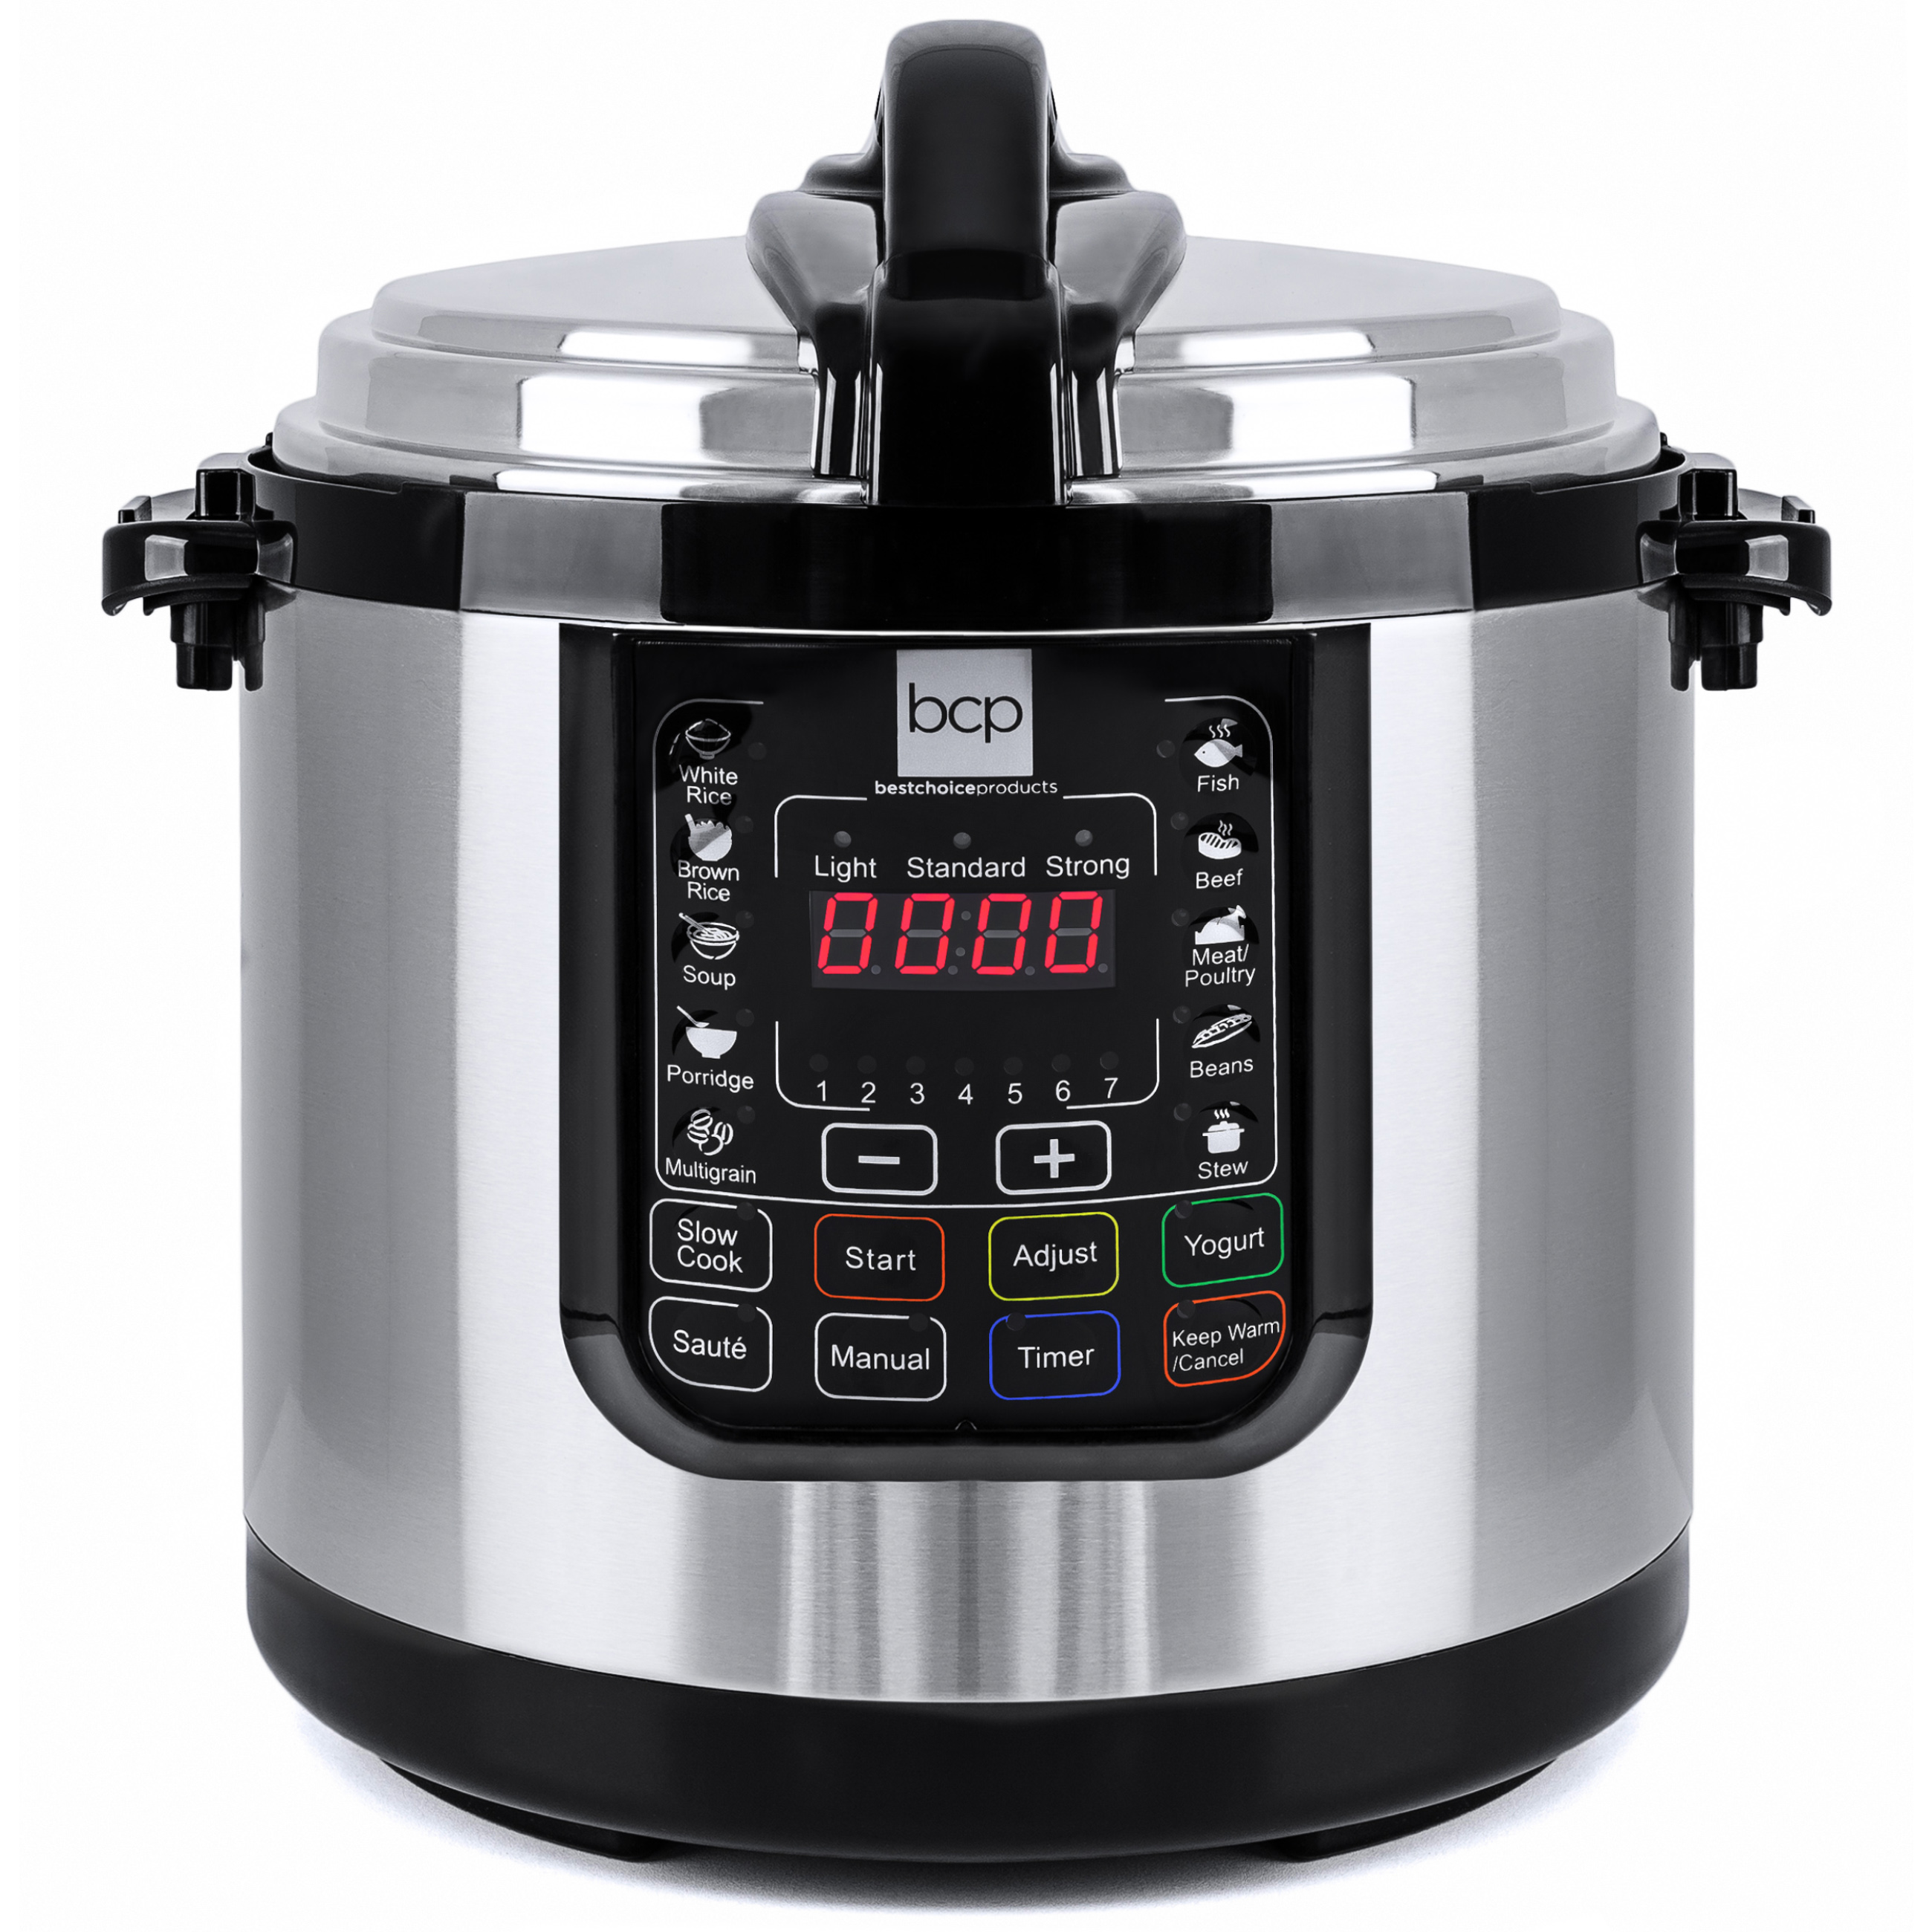 Best Choice Products 6-Liter 1000 Watt Stainless Steel Electric Pressure Cooker W/ LED Display Screen